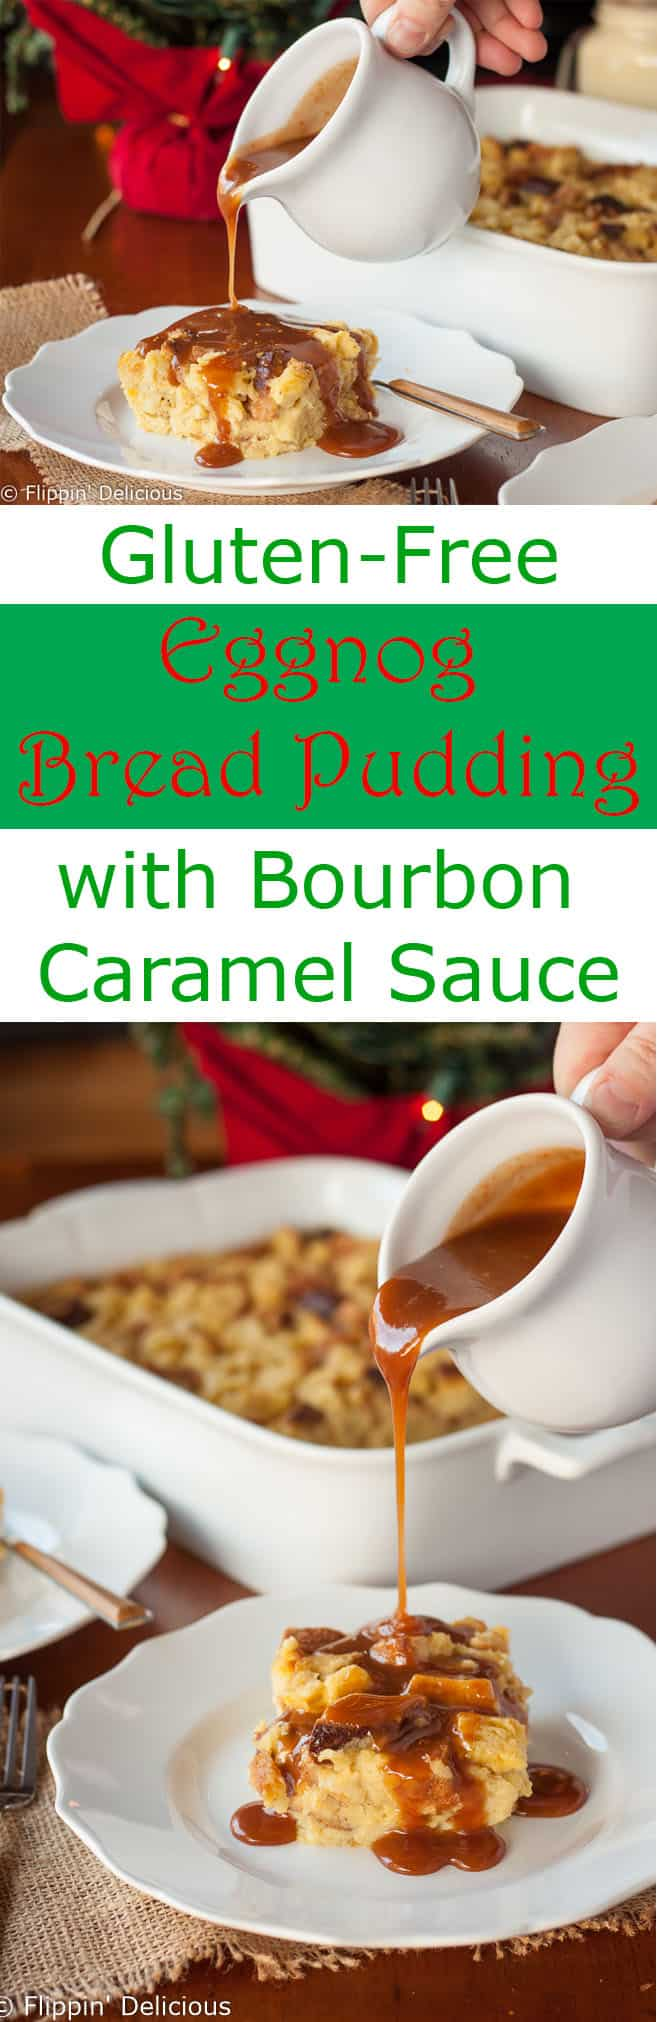 This easy gluten free eggnog bread pudding with bourbon caramel sauce is perfect for the holidays. It makes a custardy holiday dessert, or an indulgent Christmas morning breakfast. (dairy free option!)